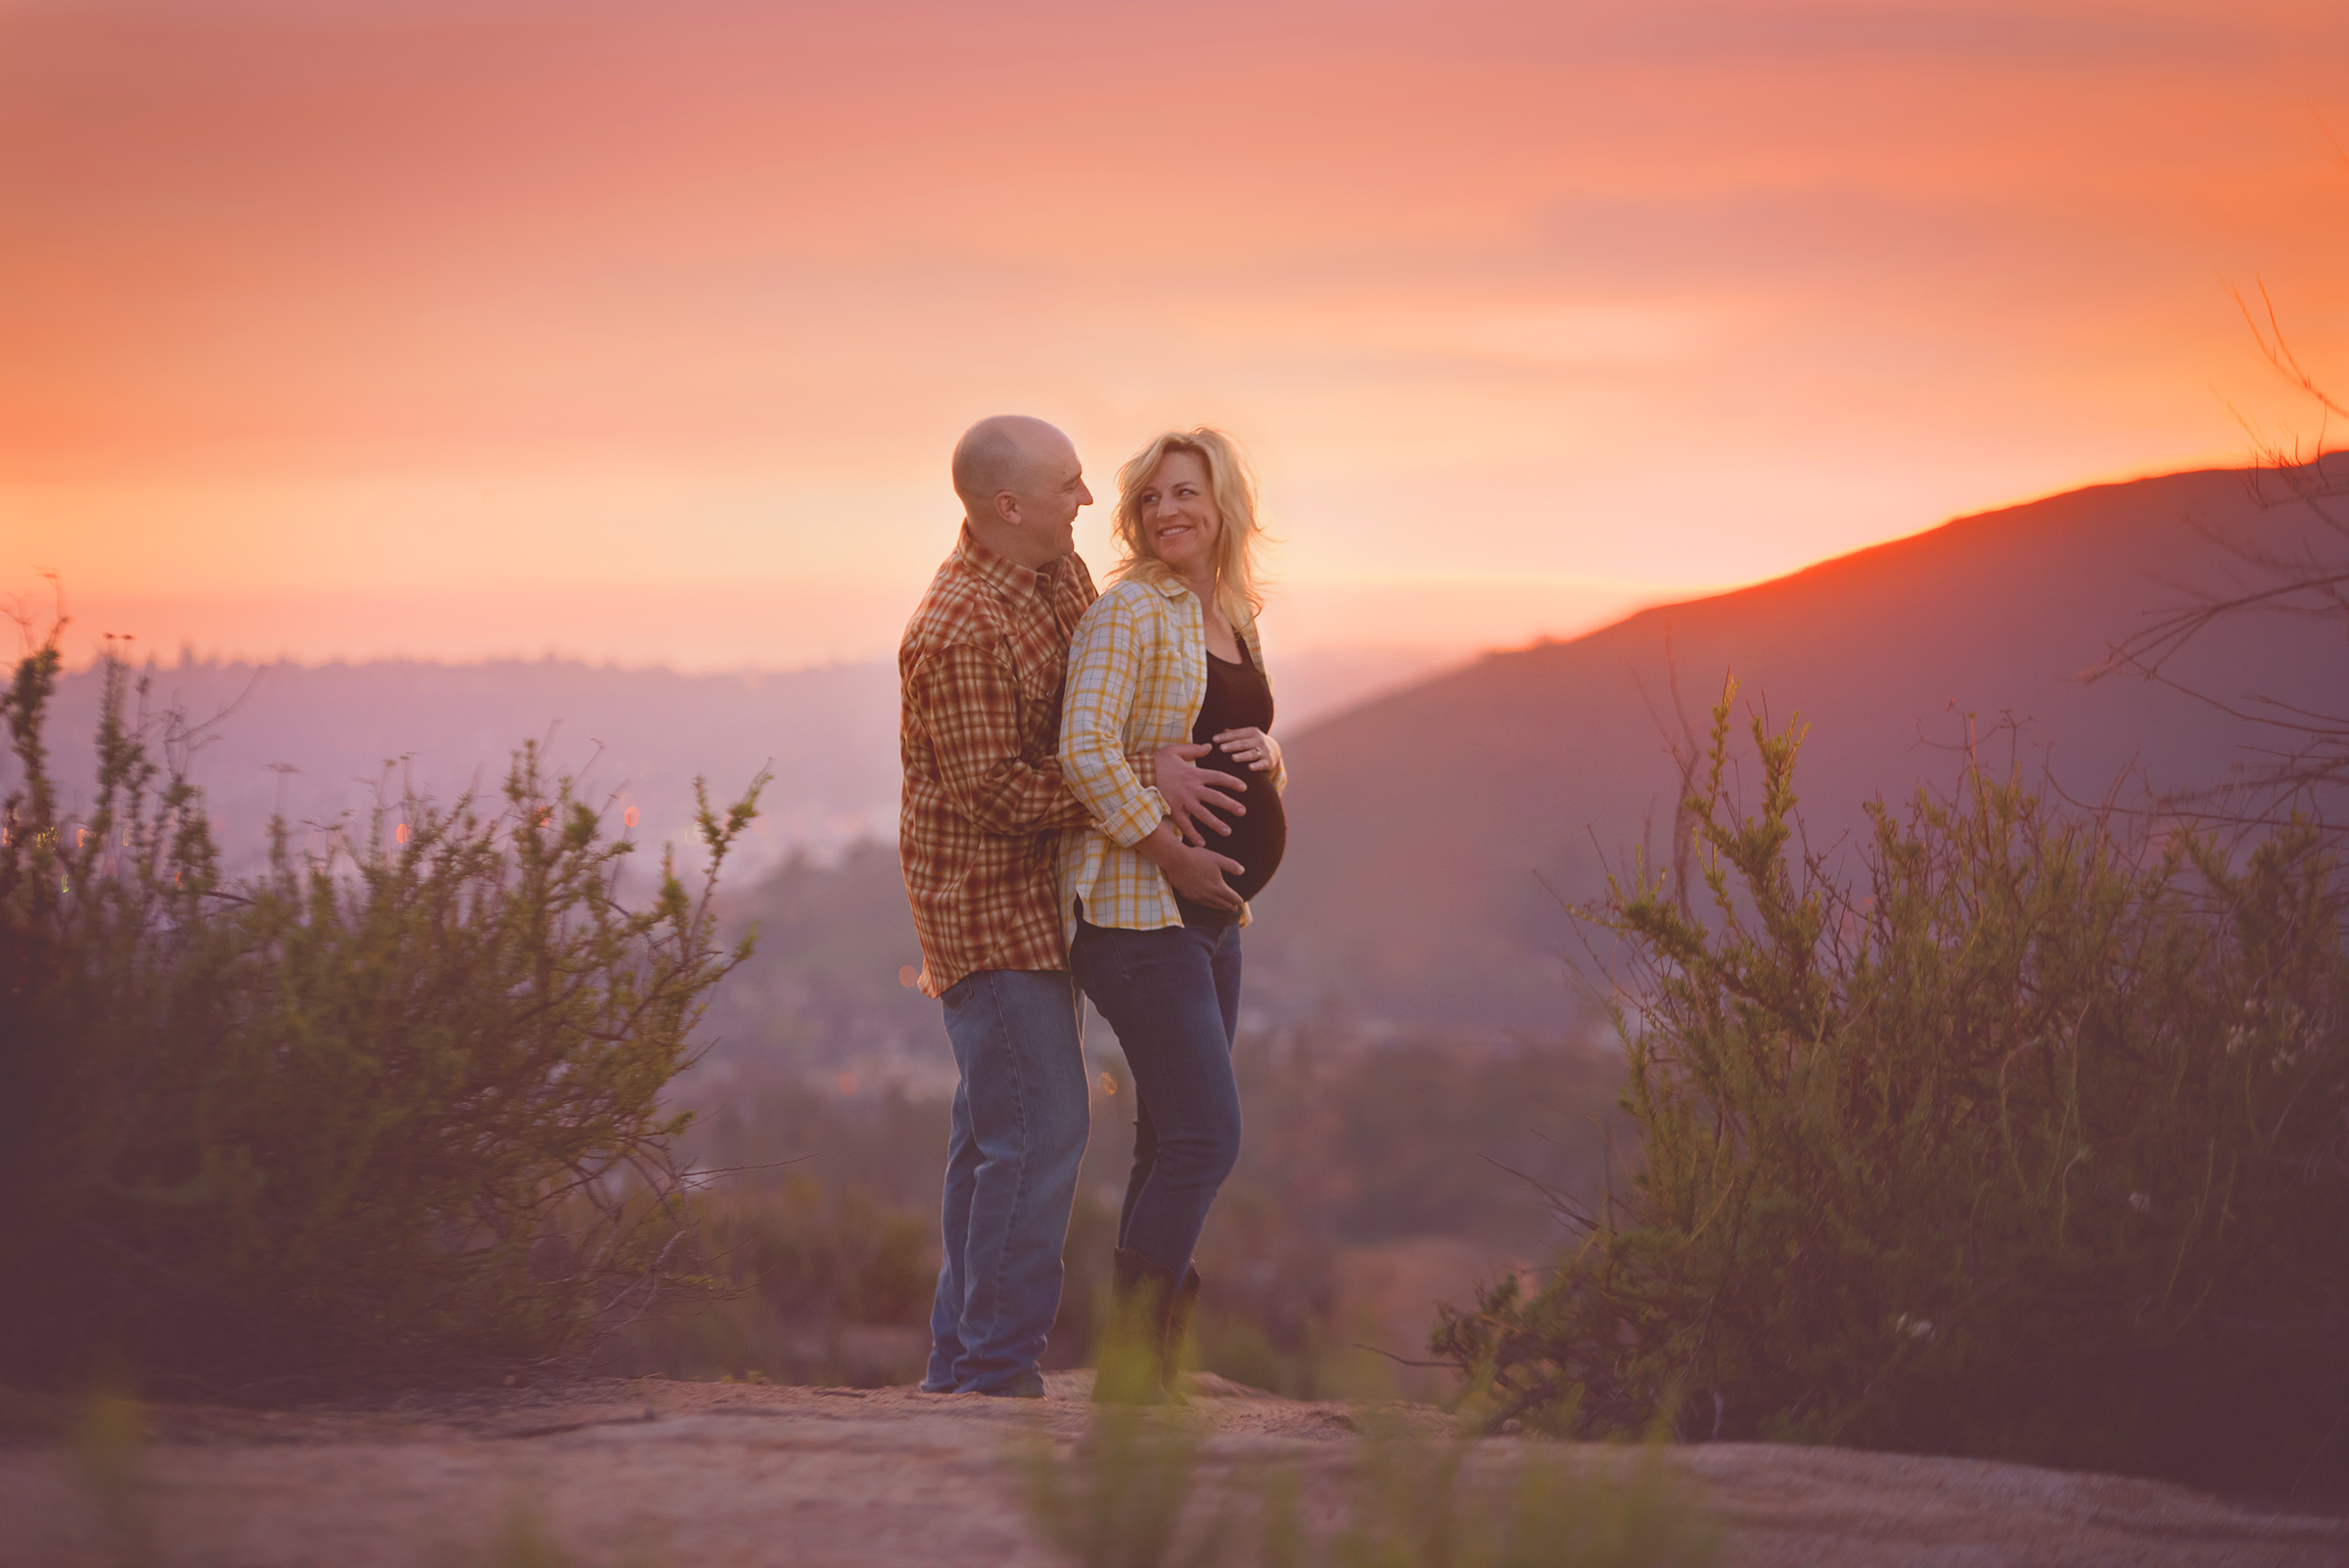 Sunset maternity photography in mountains of San Diego County